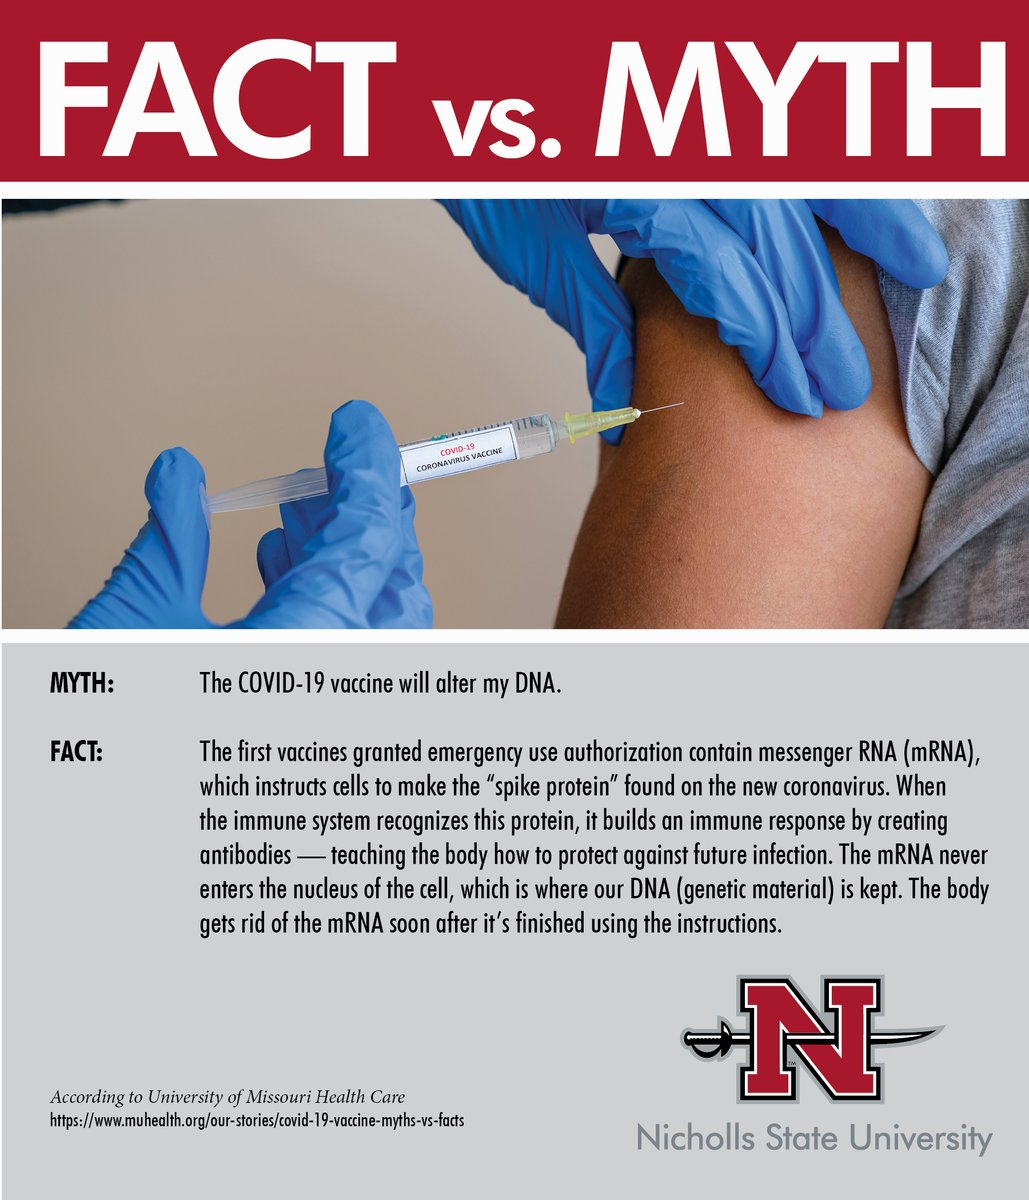 We want to help you cut through all the myths and get to the facts. The COVID-19 vaccine will help reduce the amount of positive cases on our campus and in our community. #MaskUp #FlattenTheCurve